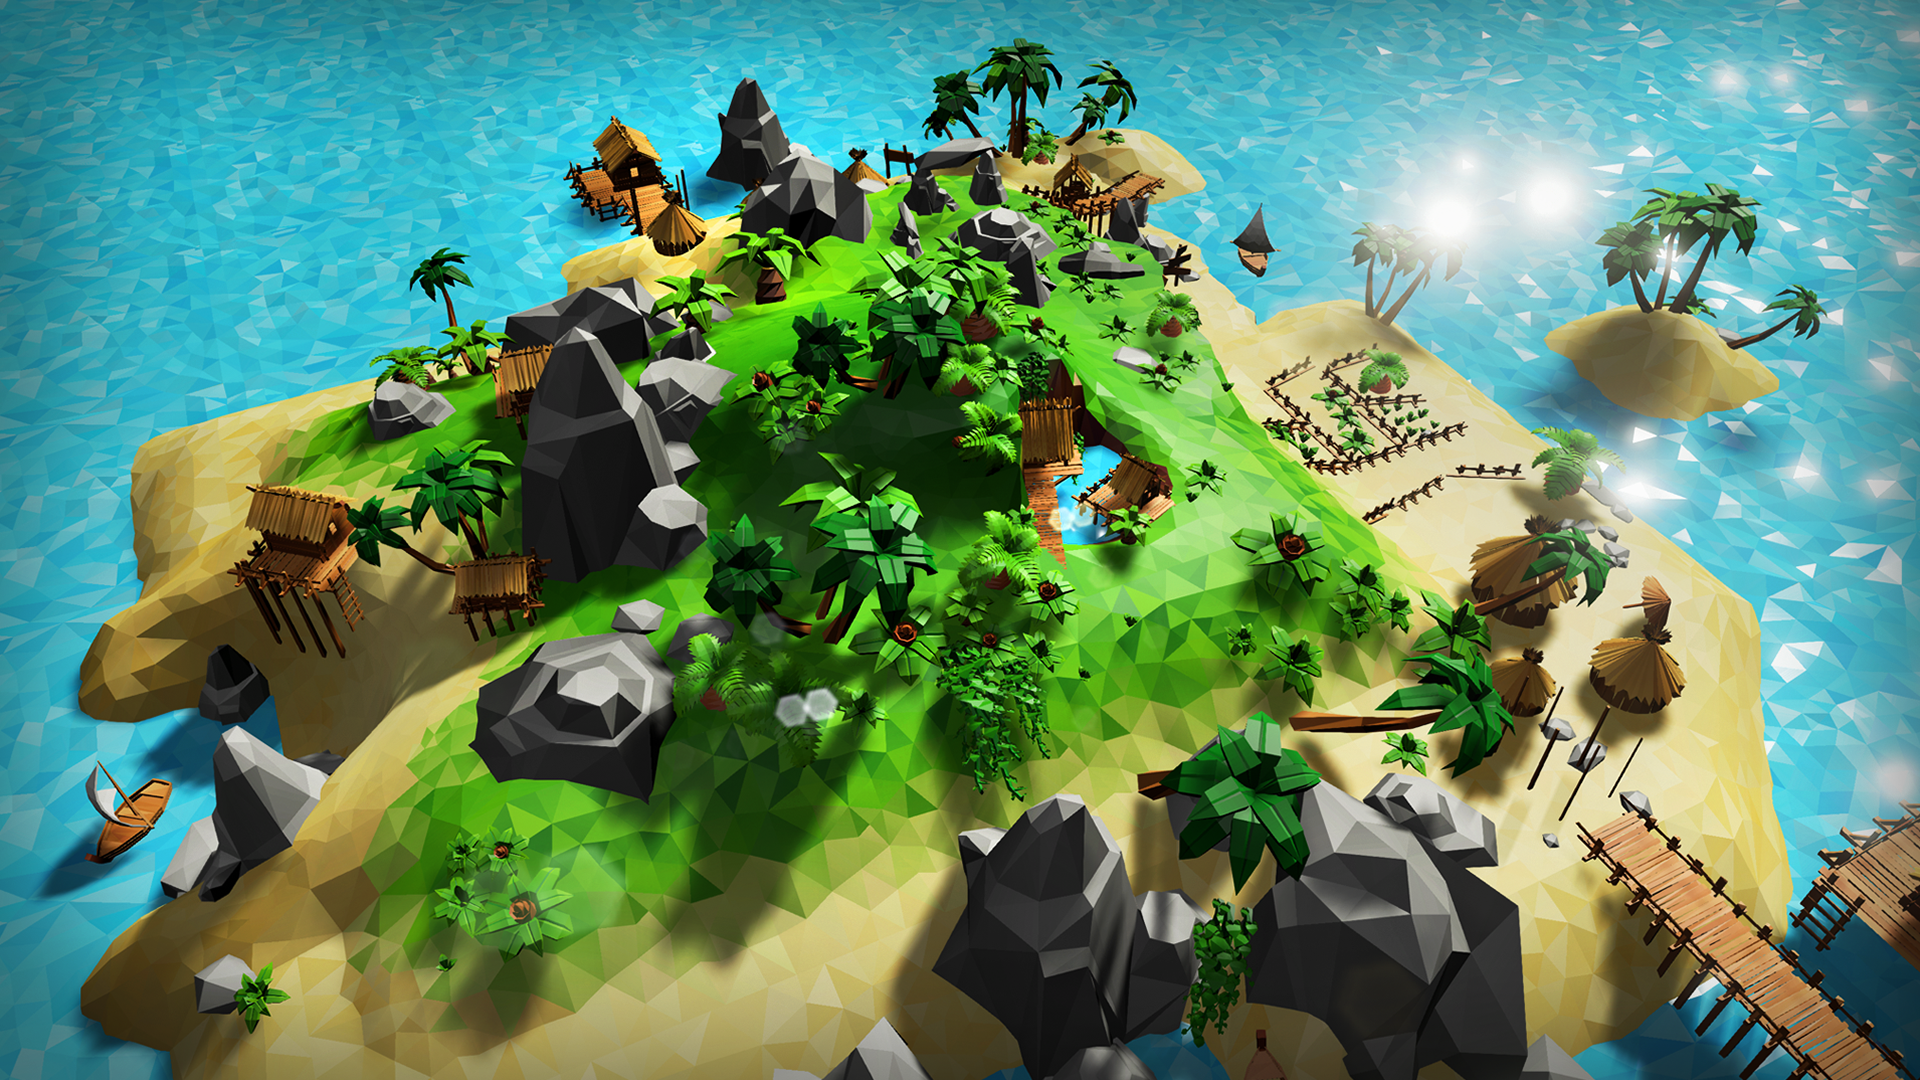 Lowpoly Tropical Island by BRAiNBOX in Environments - UE4 Marketplace